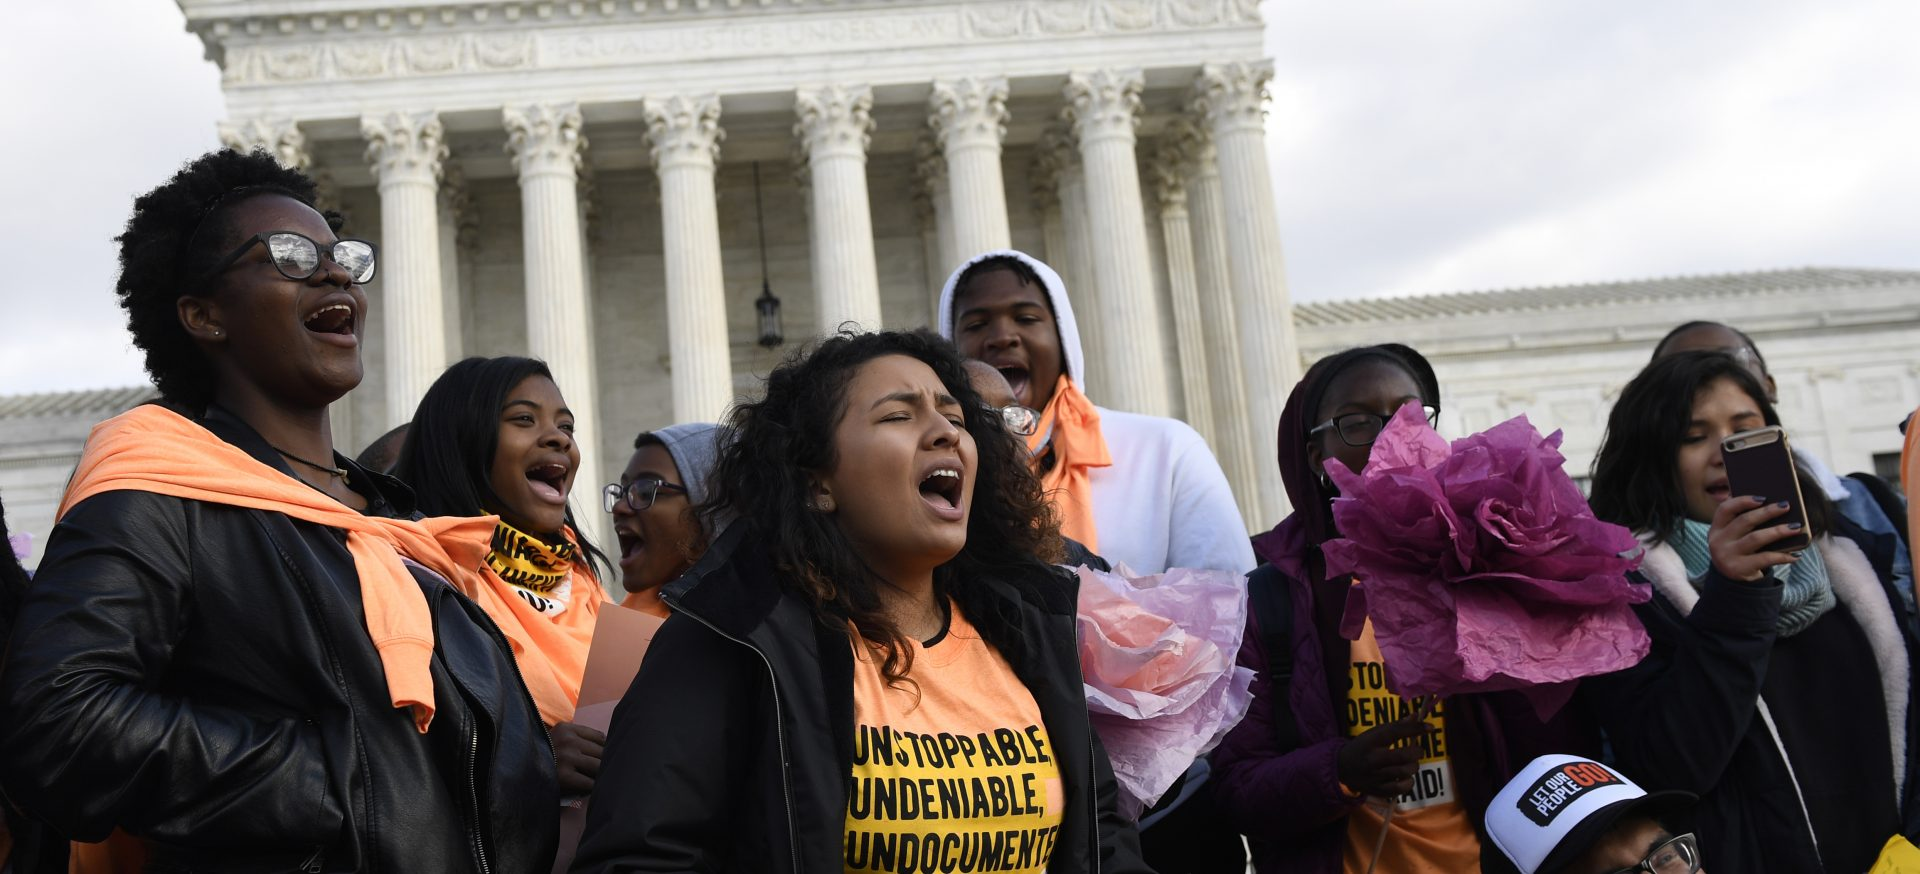 People protest outside the Supreme Court in Washington, Friday, Nov. 8, 2019. The Supreme Court on Tuesday takes up the Trump administration's plan to end legal protections that shield nearly 700,000 immigrants from deportation, in a case with strong political overtones amid the 2020 presidential election campaign.